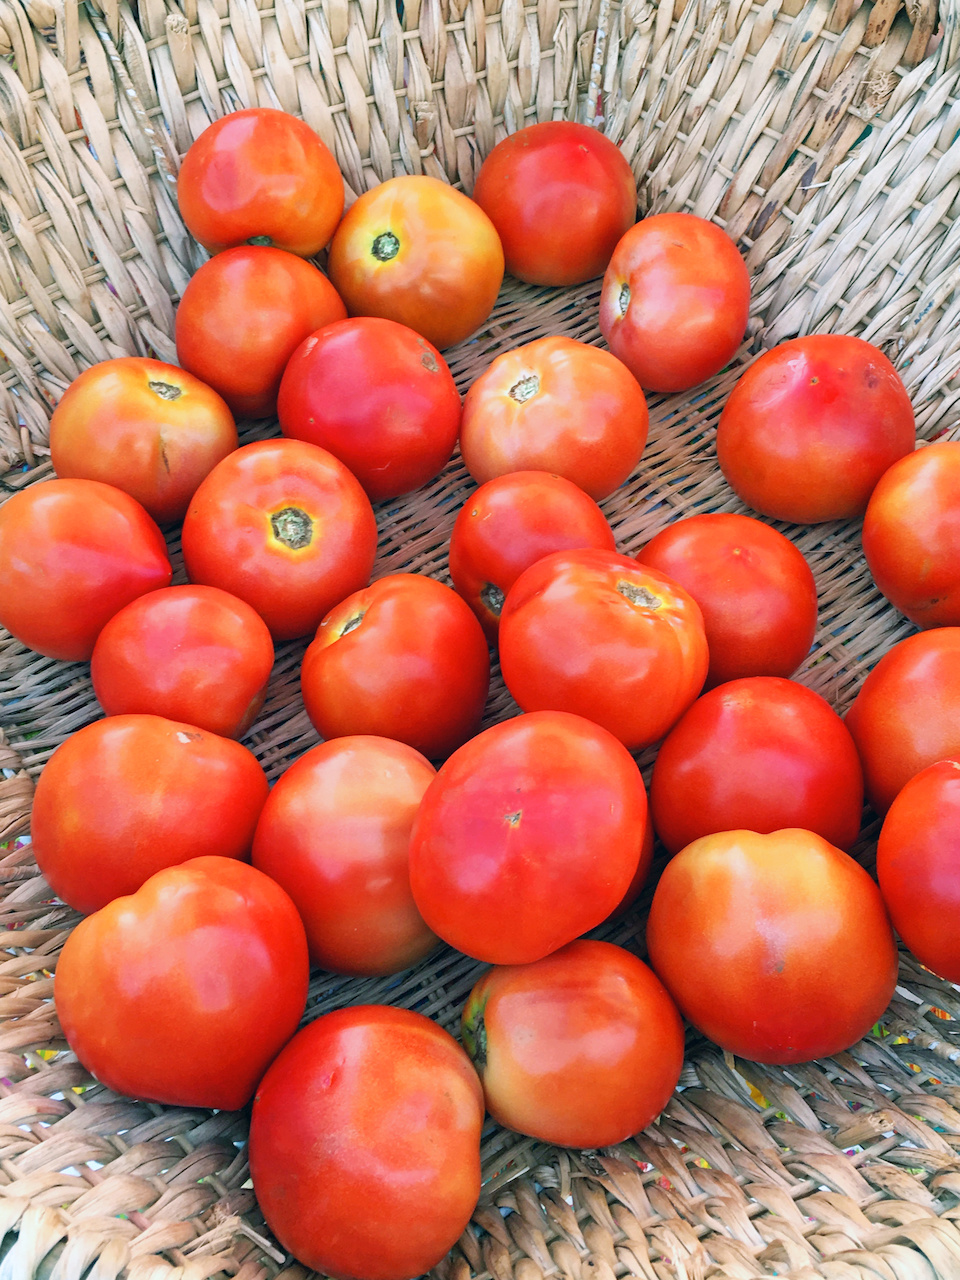 Alabama tomatoes at the Summit Market